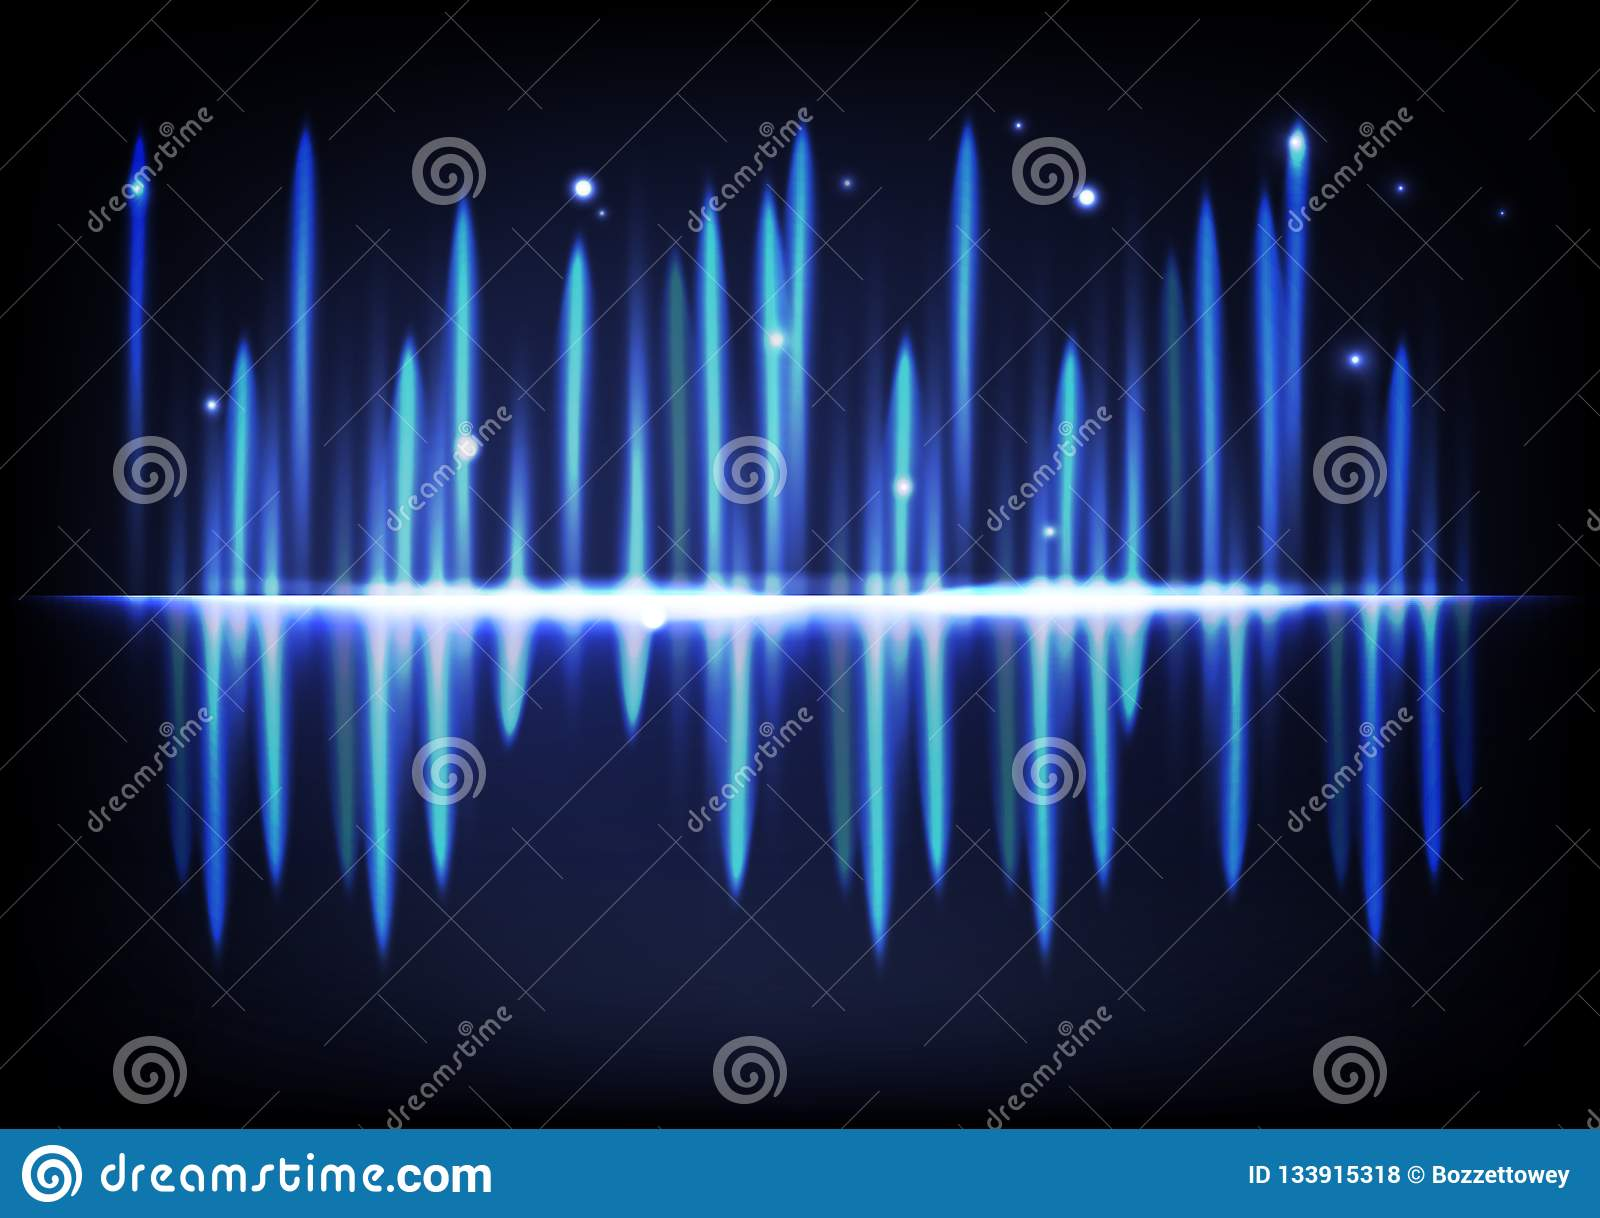 Abstract Technology Background With Light Effect: Light Bright Glowing Effect Abstract Background Music